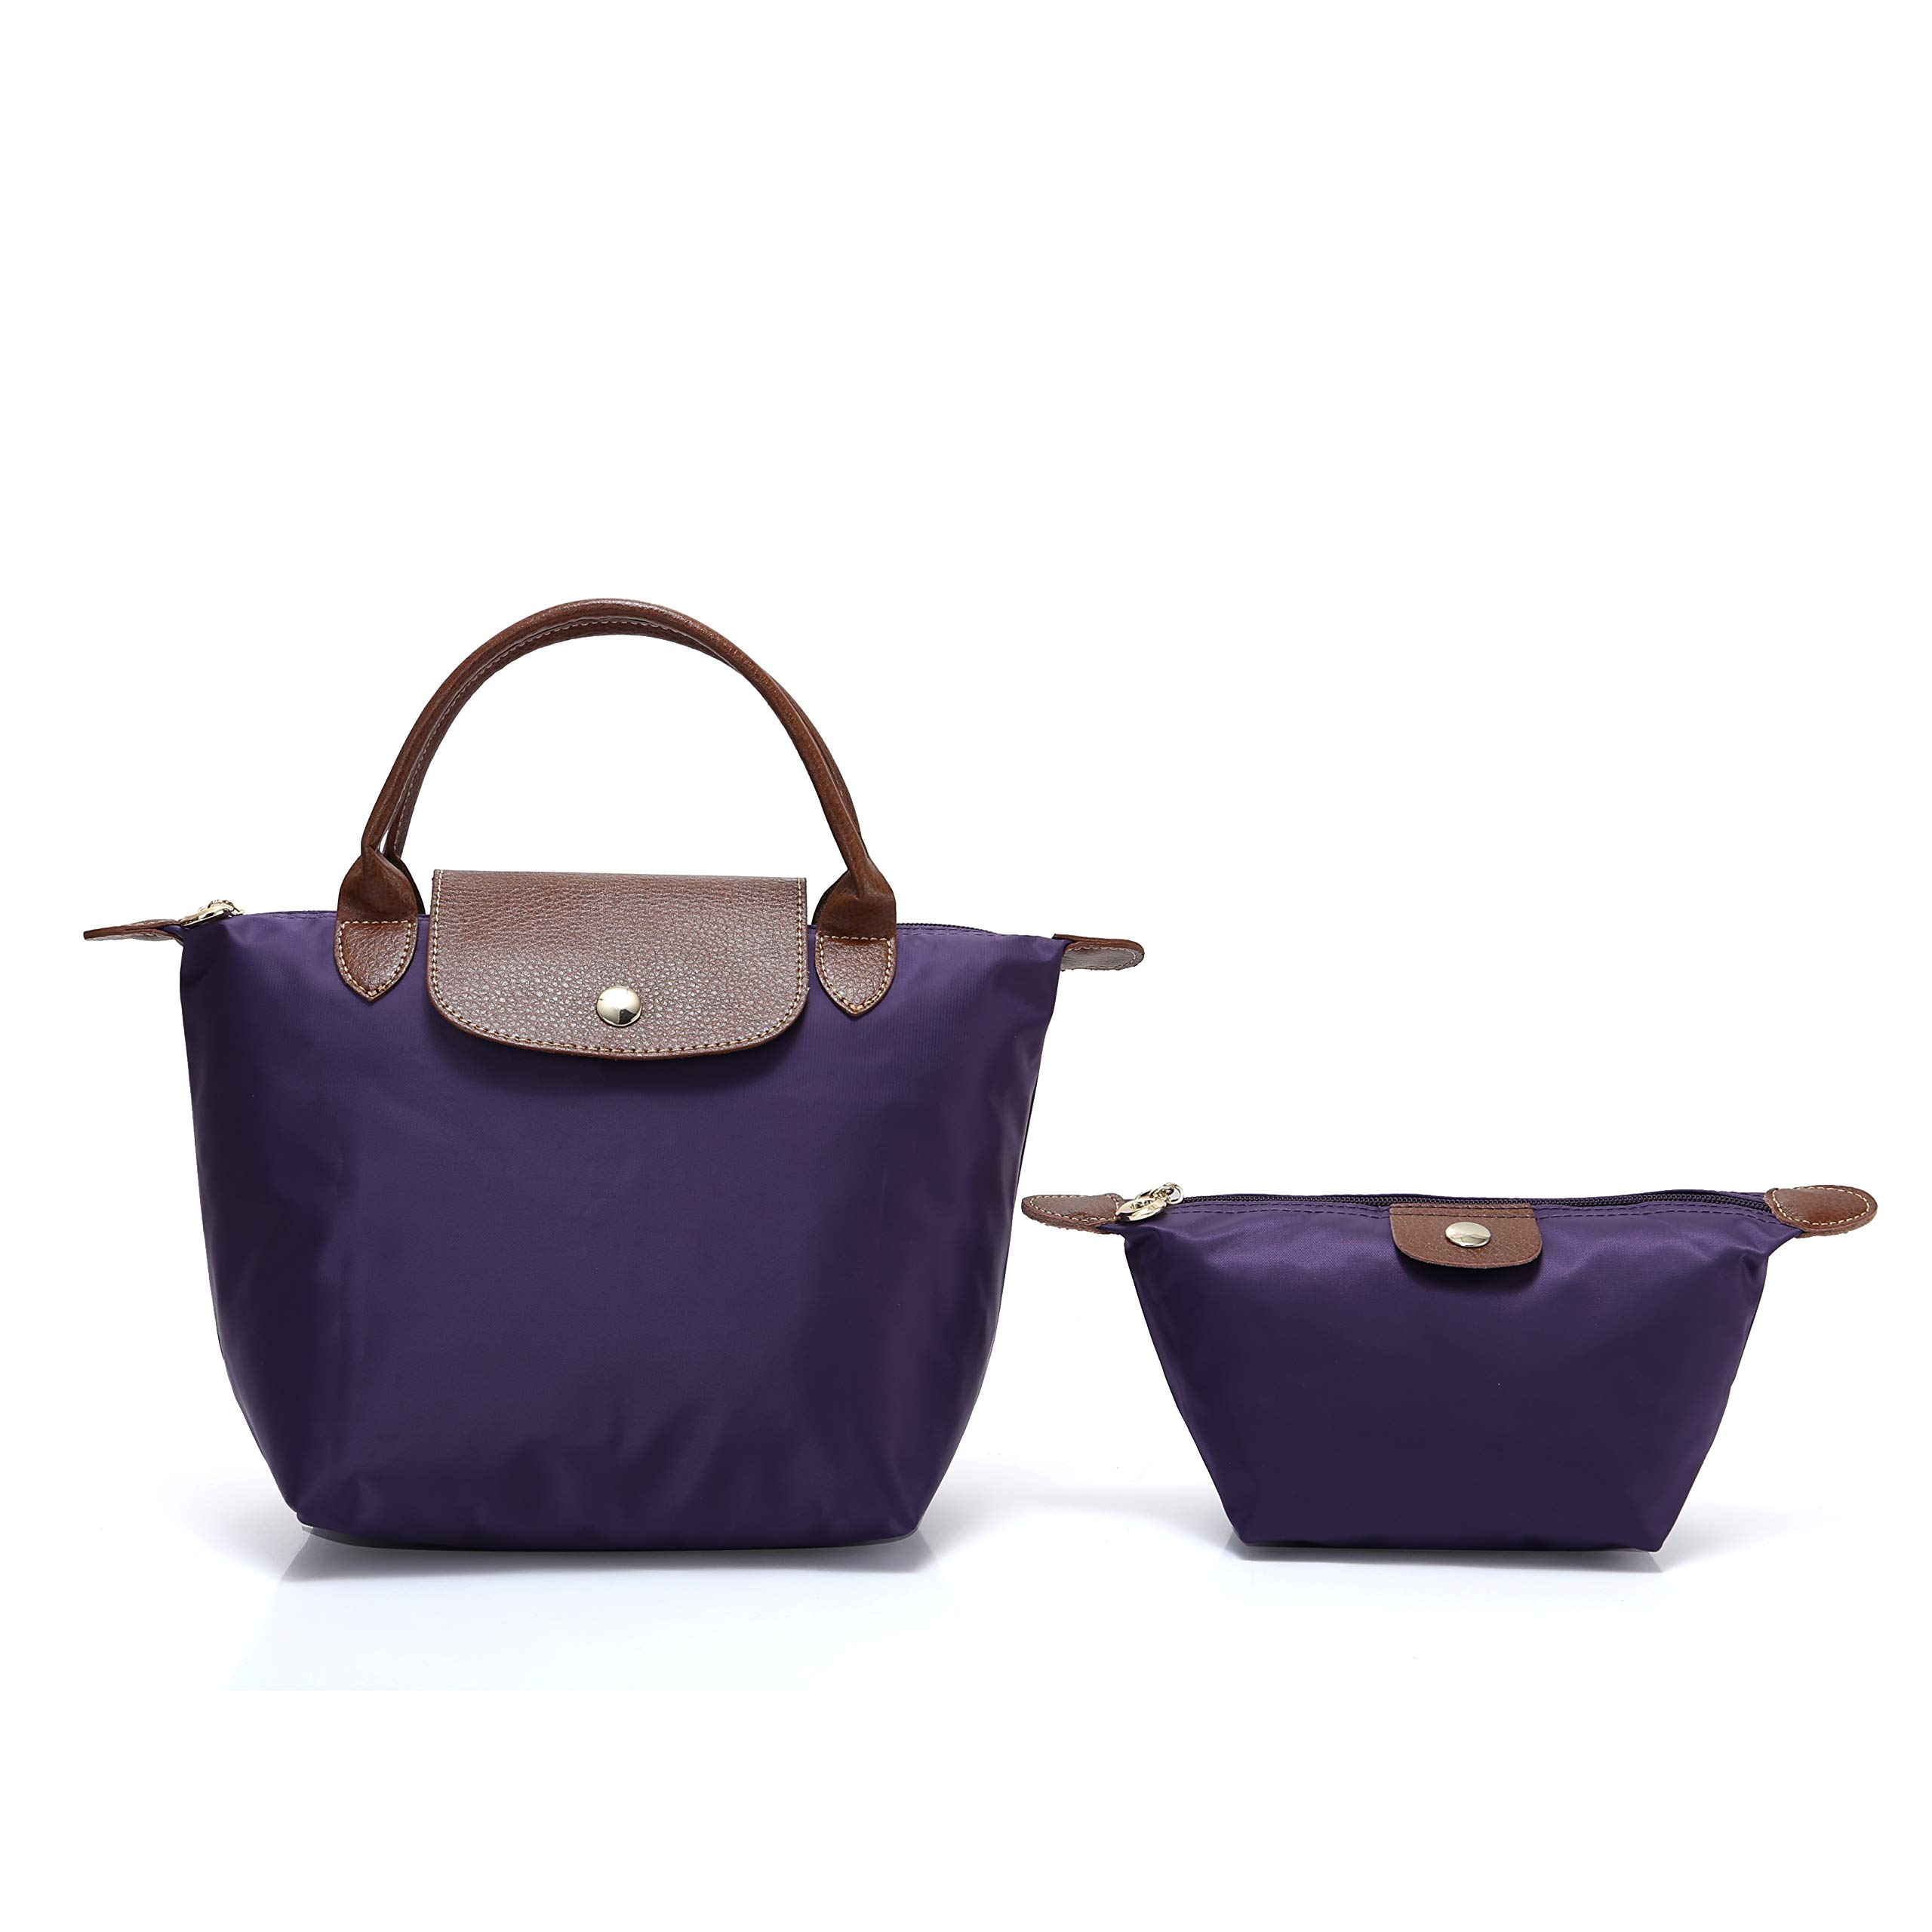 2 pcs Women's Stylish Waterproof Tote Bag Nylon Travel Shoulder Handbag (Dark purple;Mini number)